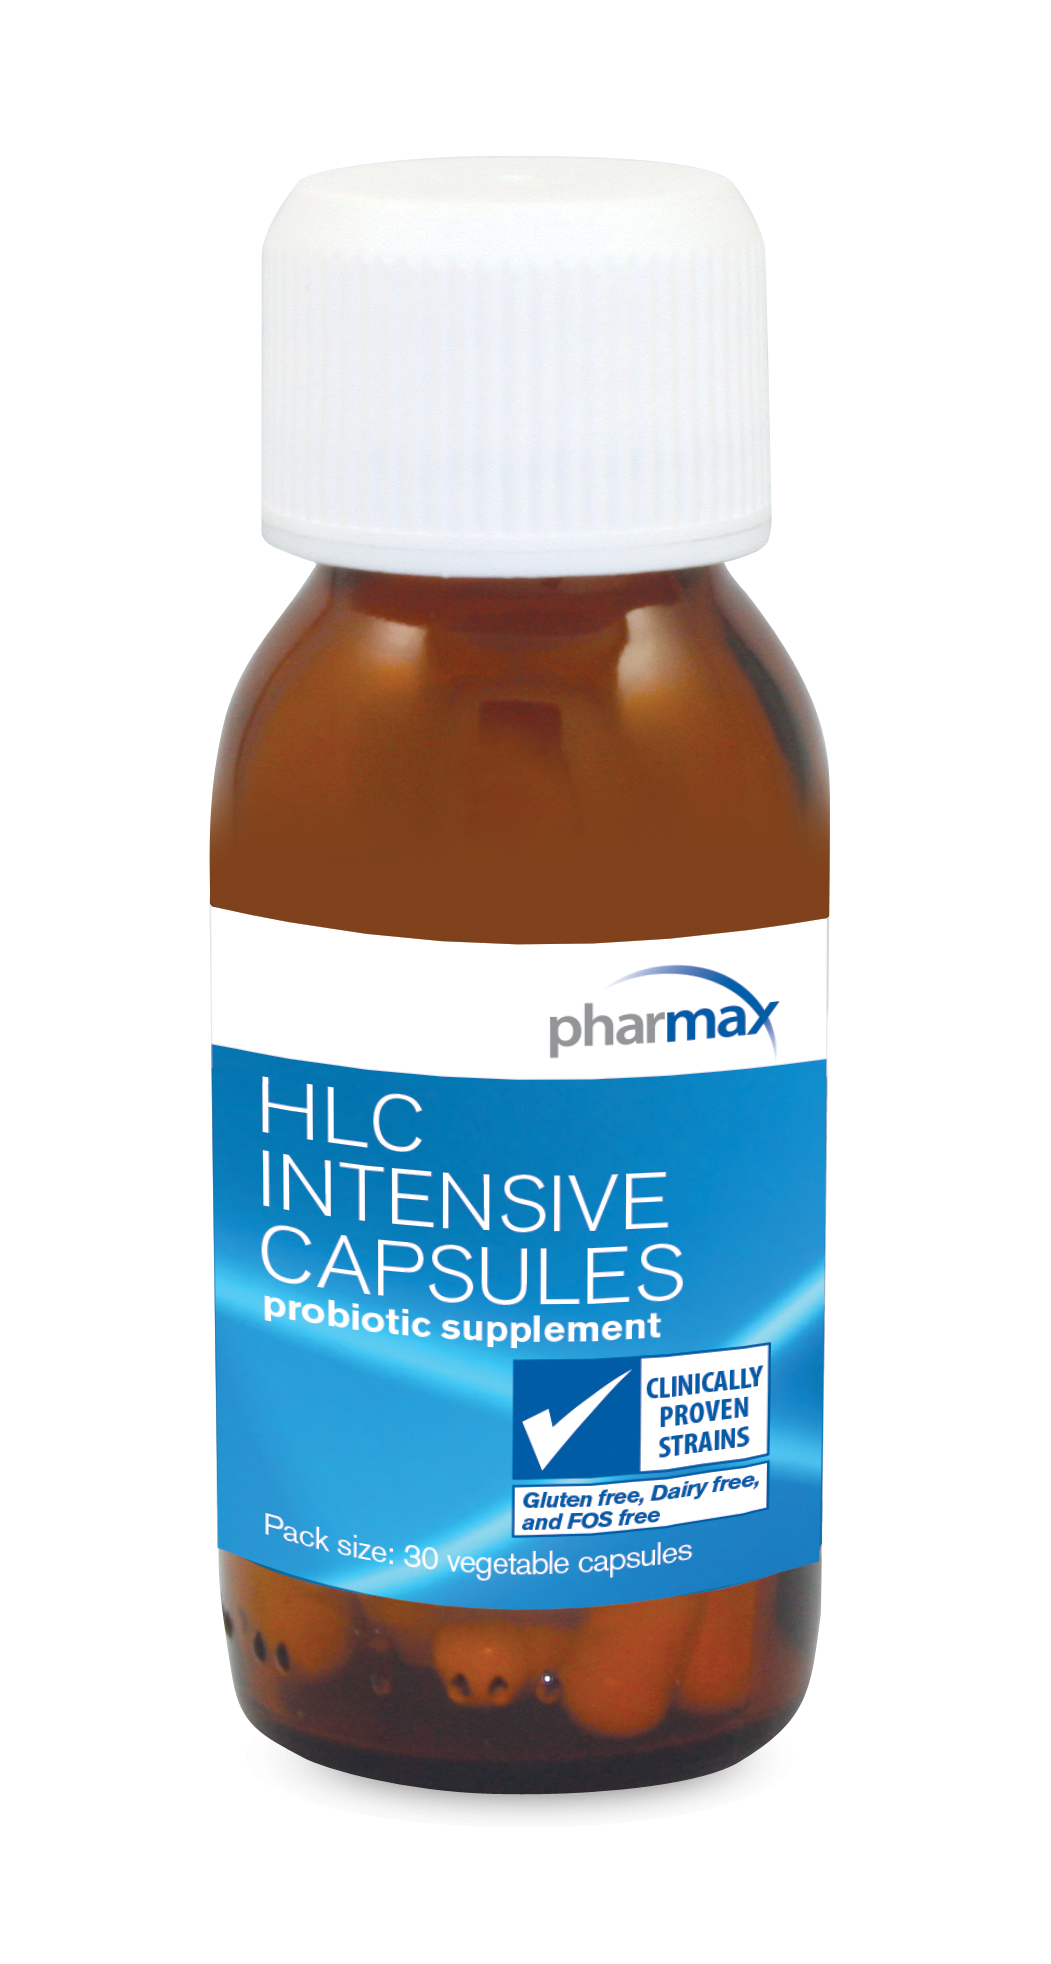 PharMAX HLC Intensive